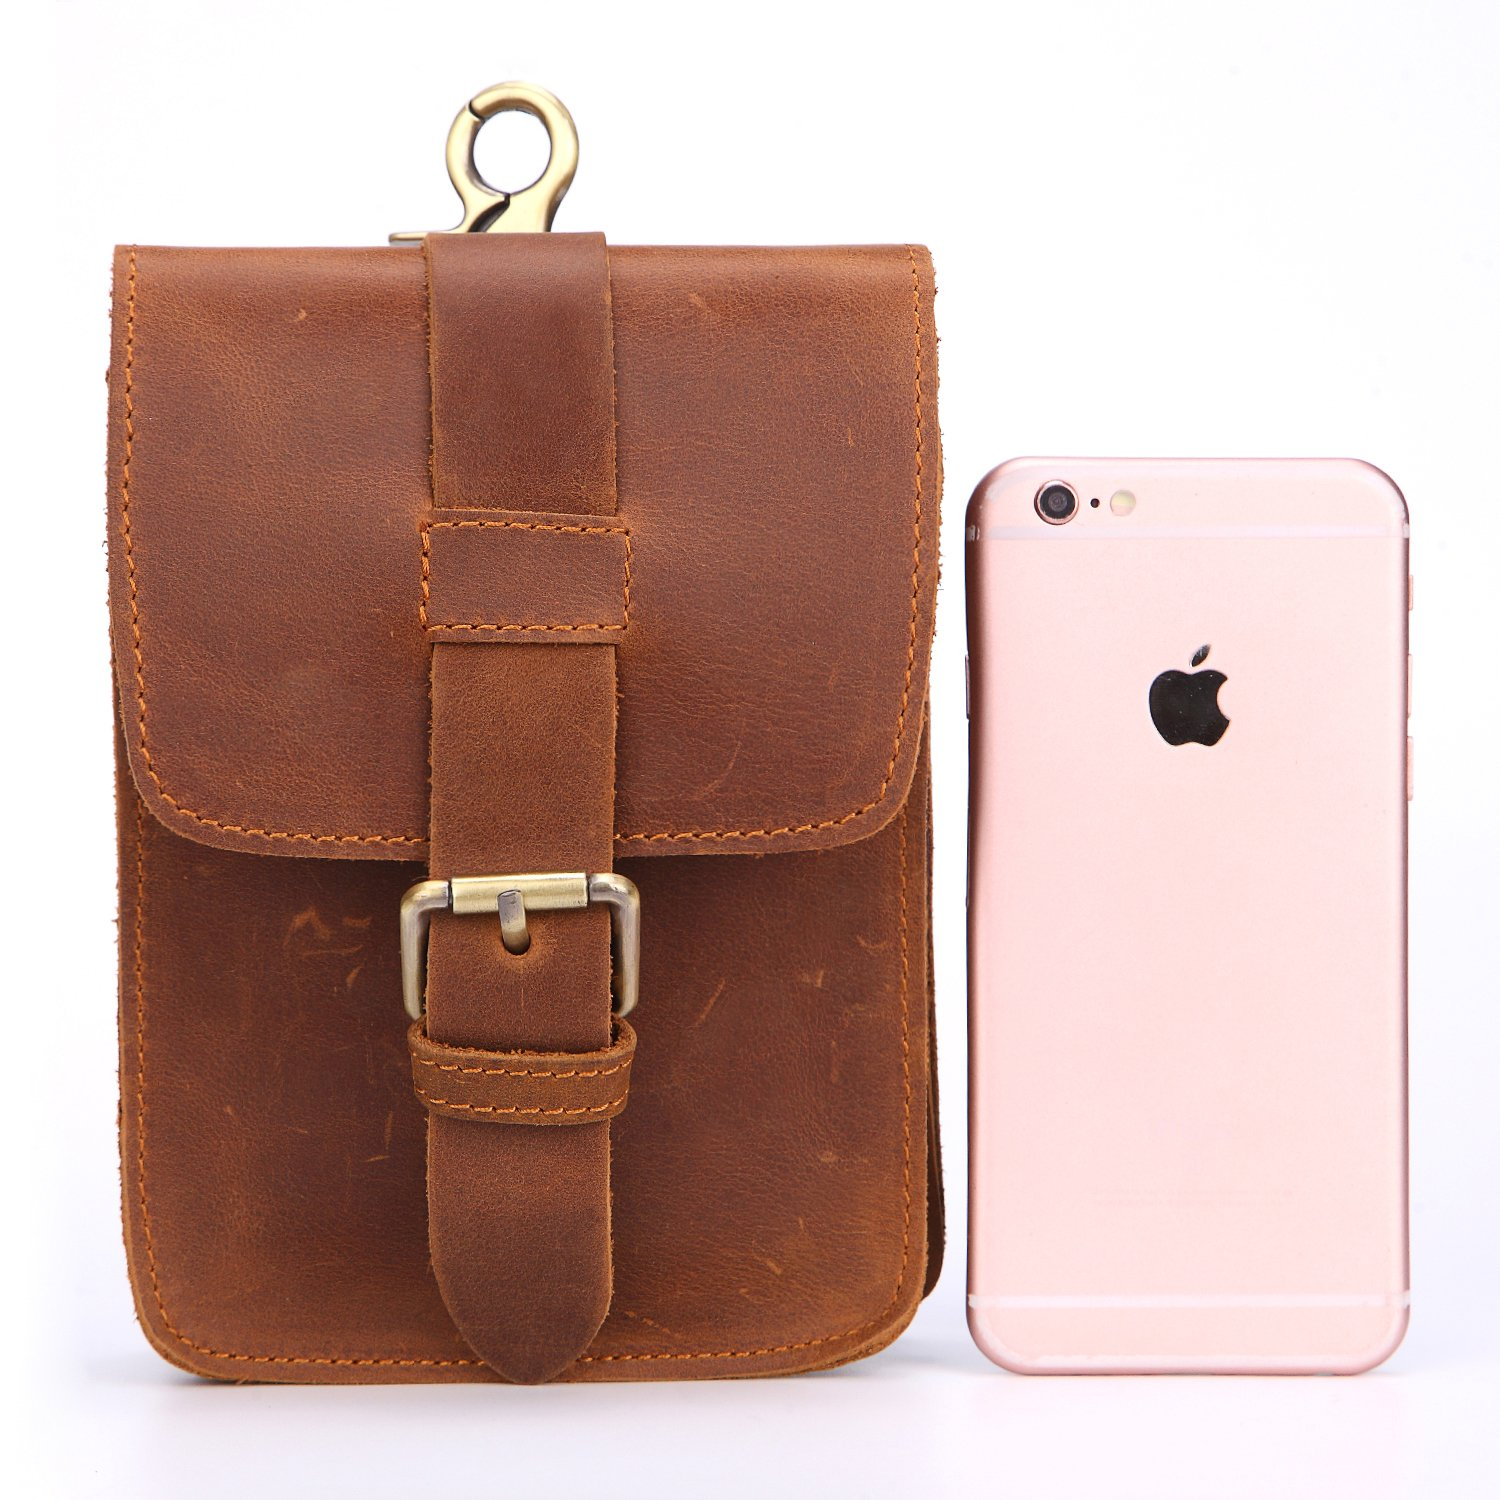 New Mens Pockets Leather Phone Belt Bags Mountaineering Bags